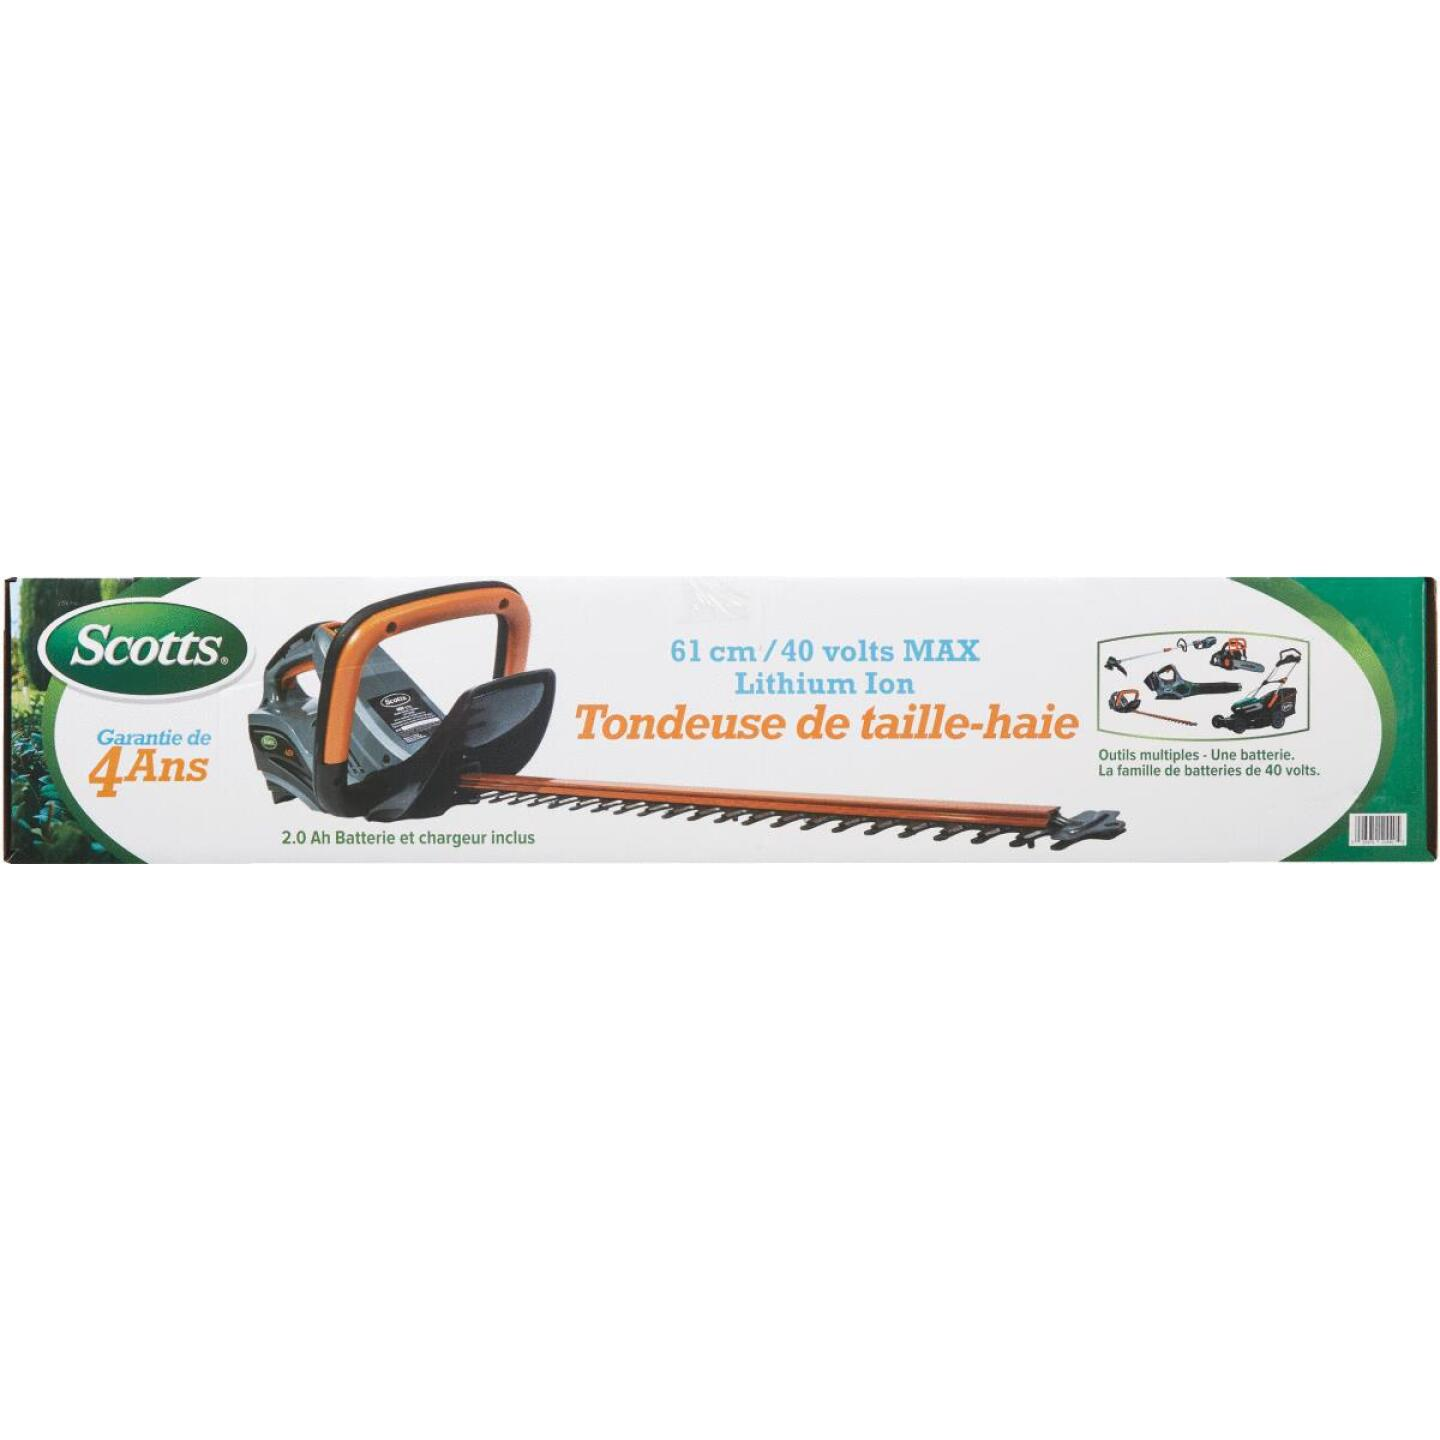 Scotts 24 In. 40V Lithium Ion Cordless Hedge Trimmer Image 2